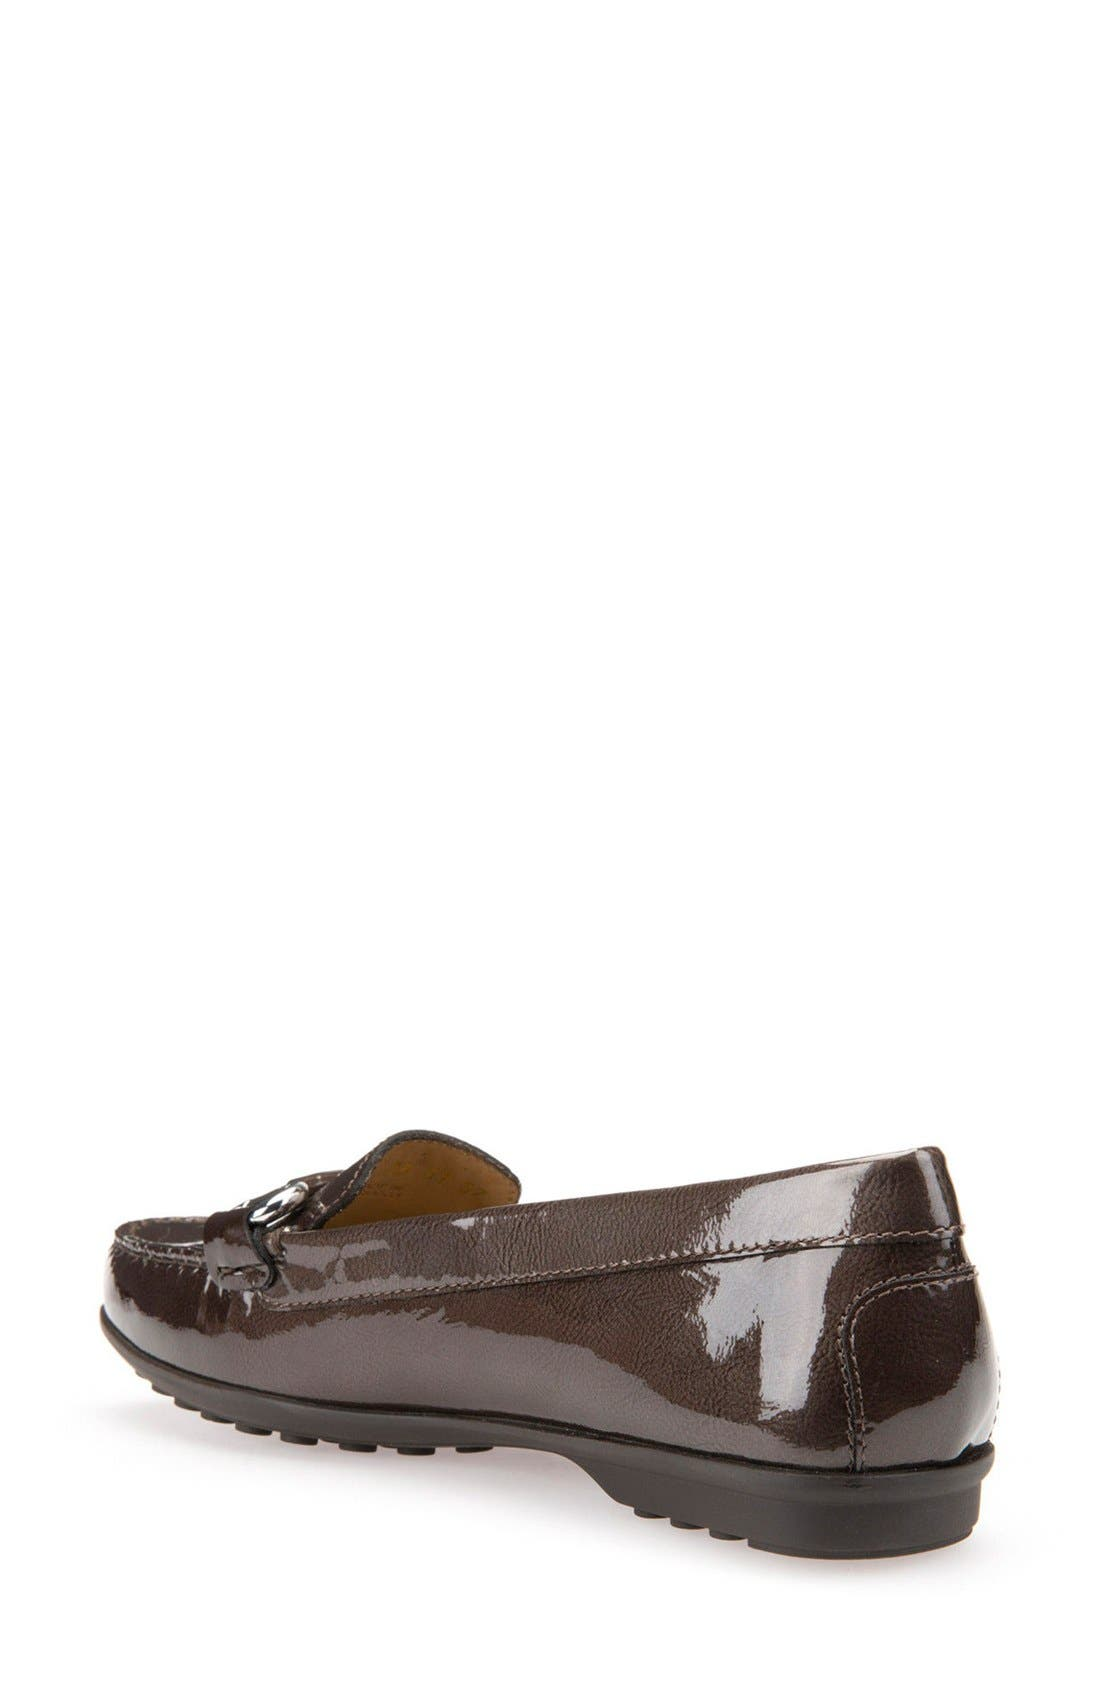 Elidia Bit Water Resistant Loafer,                             Alternate thumbnail 2, color,                             Chestnut Leather